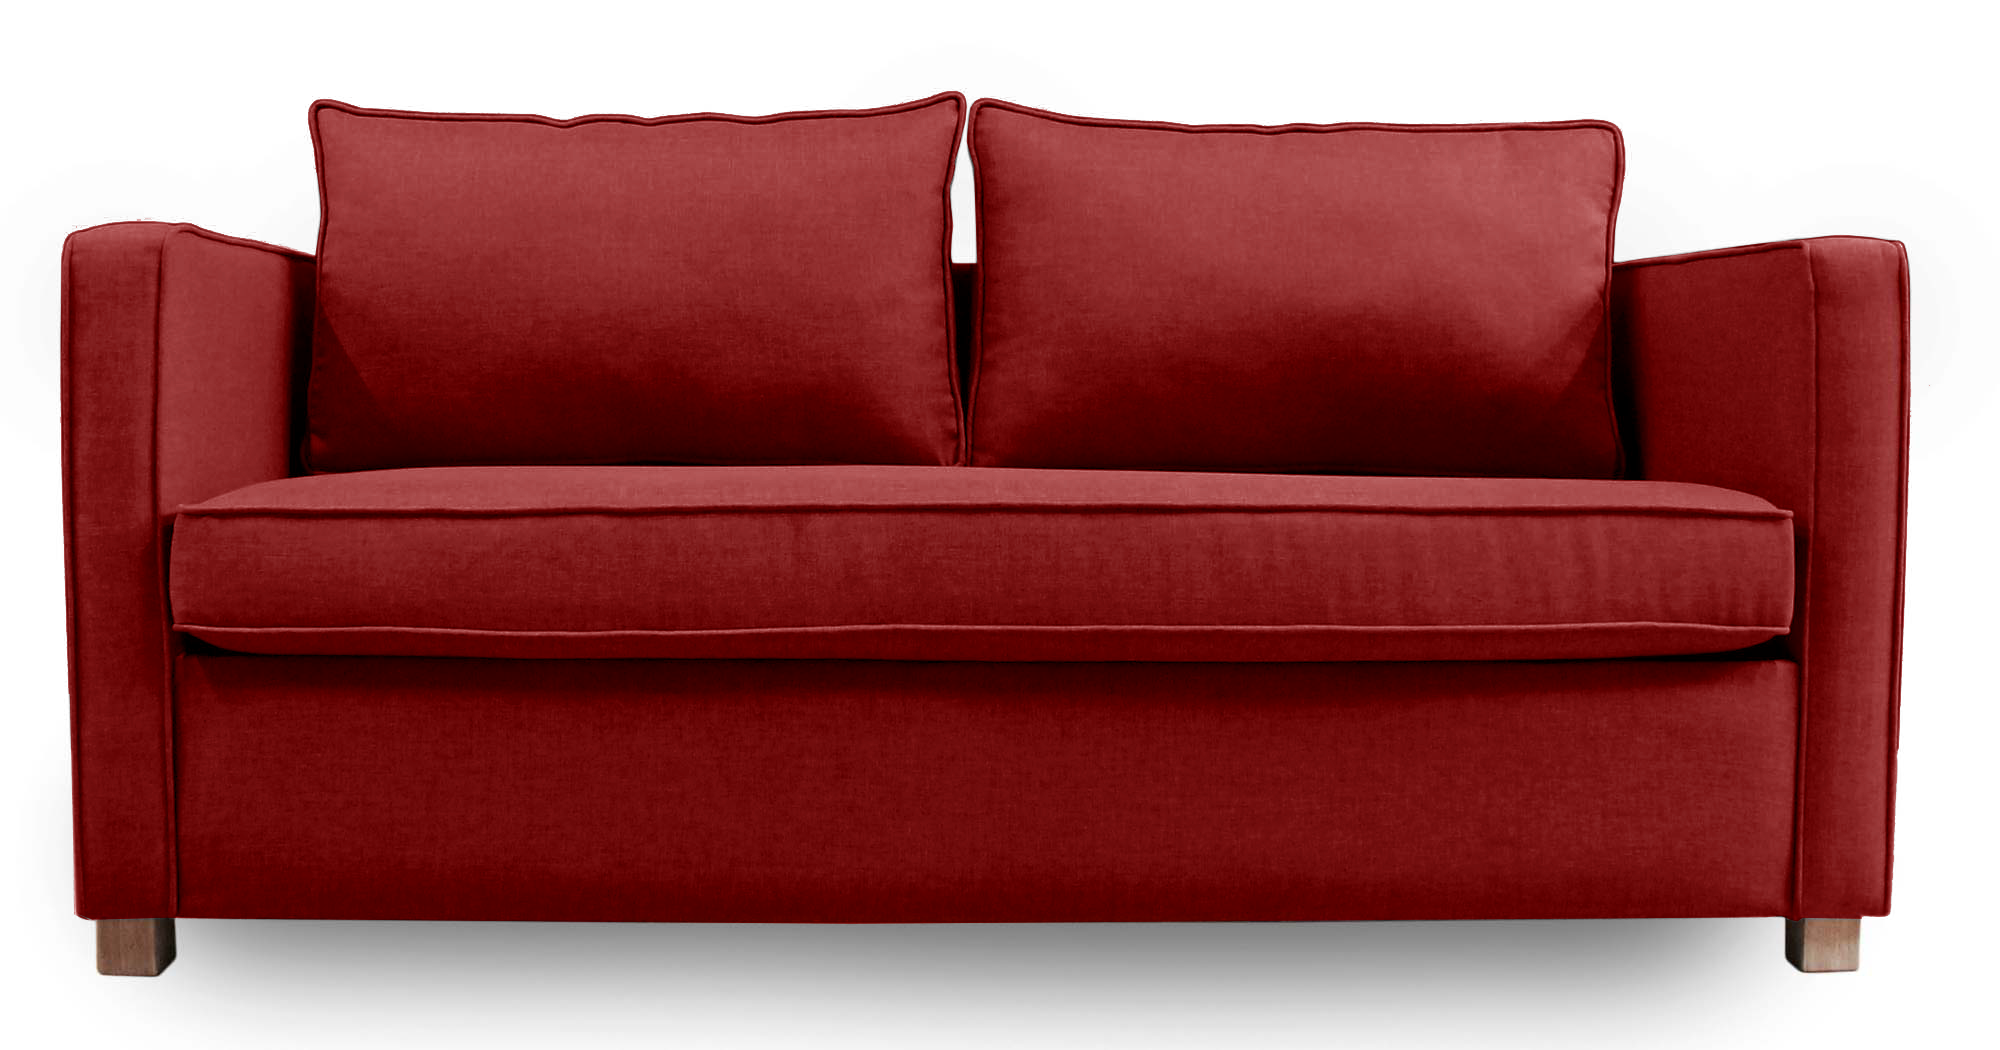 Sofa Cama Rosen Quantum Red